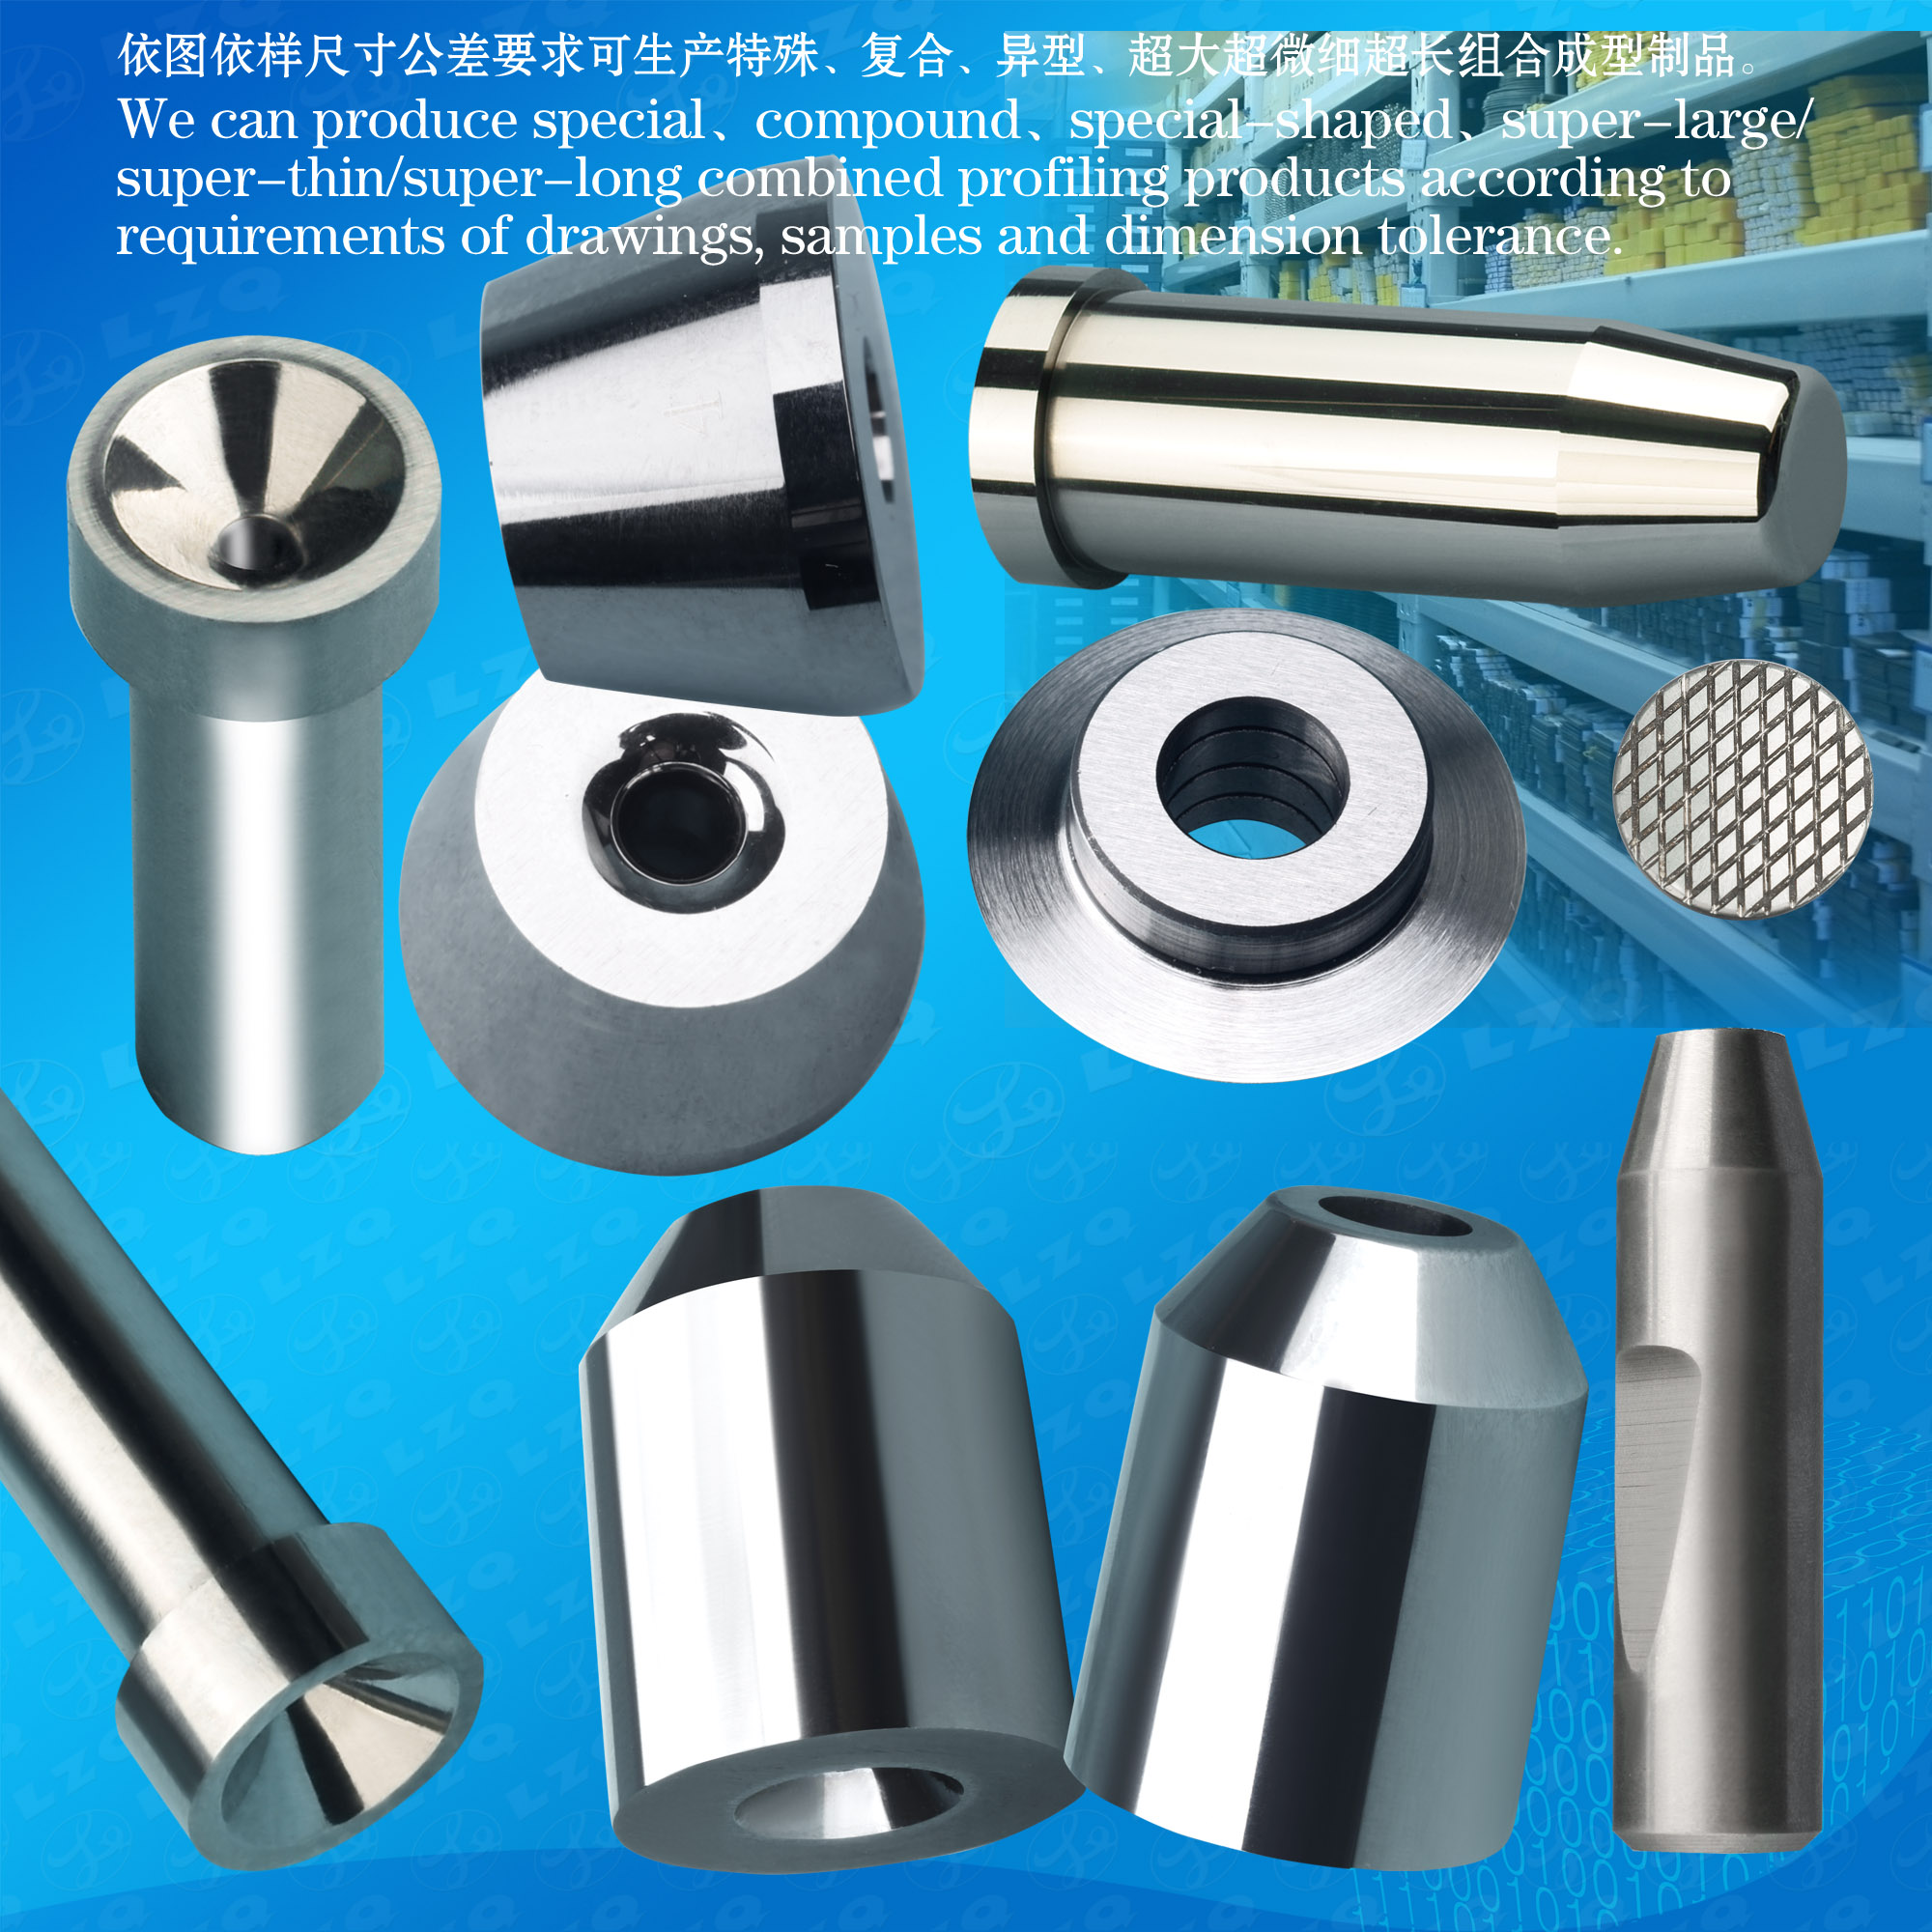 Shaver, Stamping Knife, Punch, Punching Mould